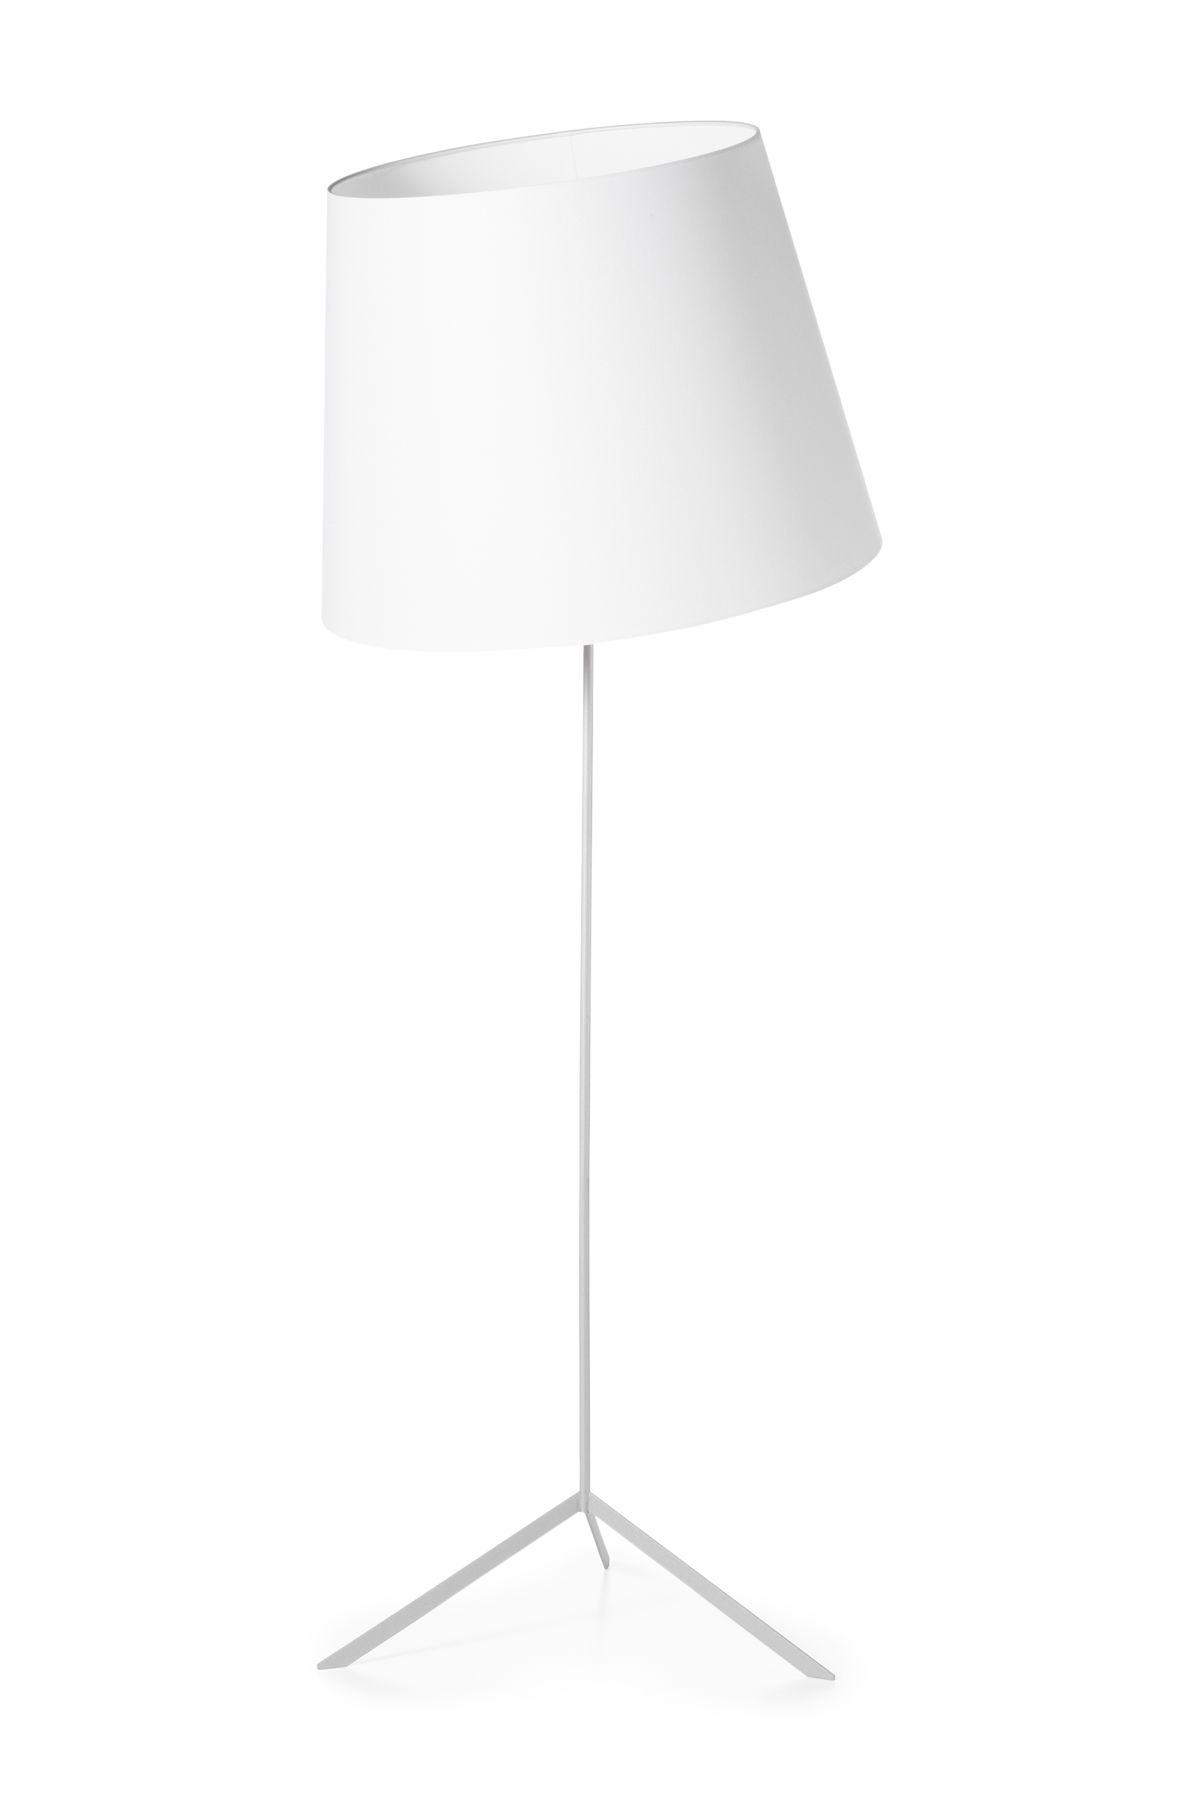 Double Shade floor lamp front view